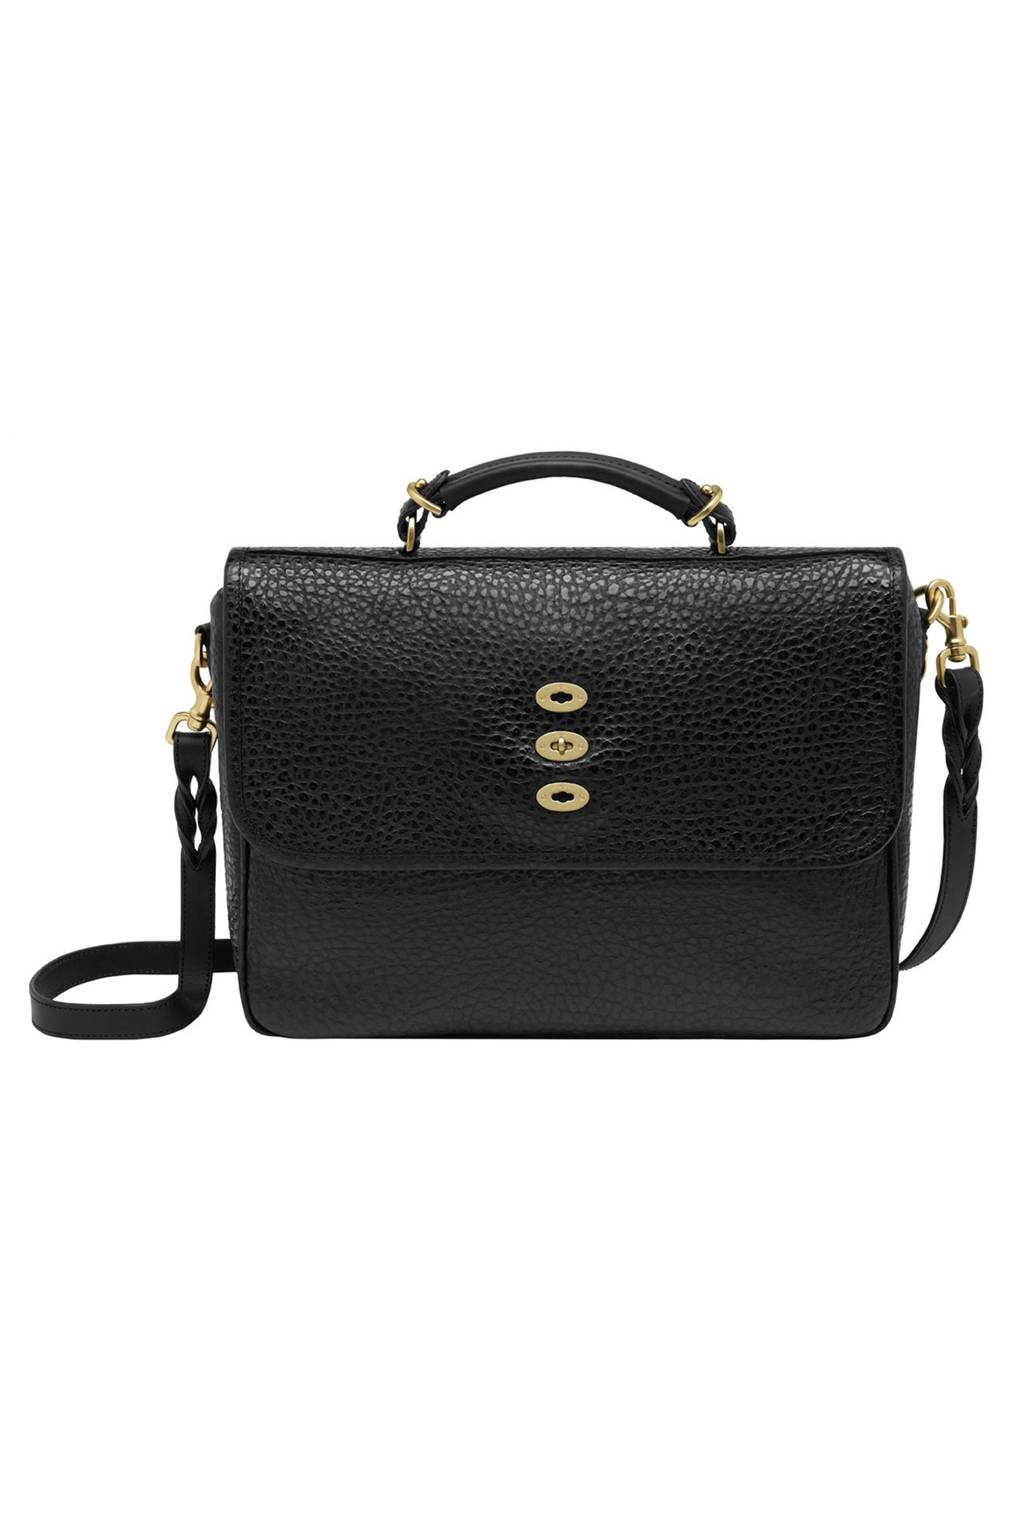 ... norway mulberry launches bryn satchel bag british vogue 72e46 d8209 d87f931fa8193